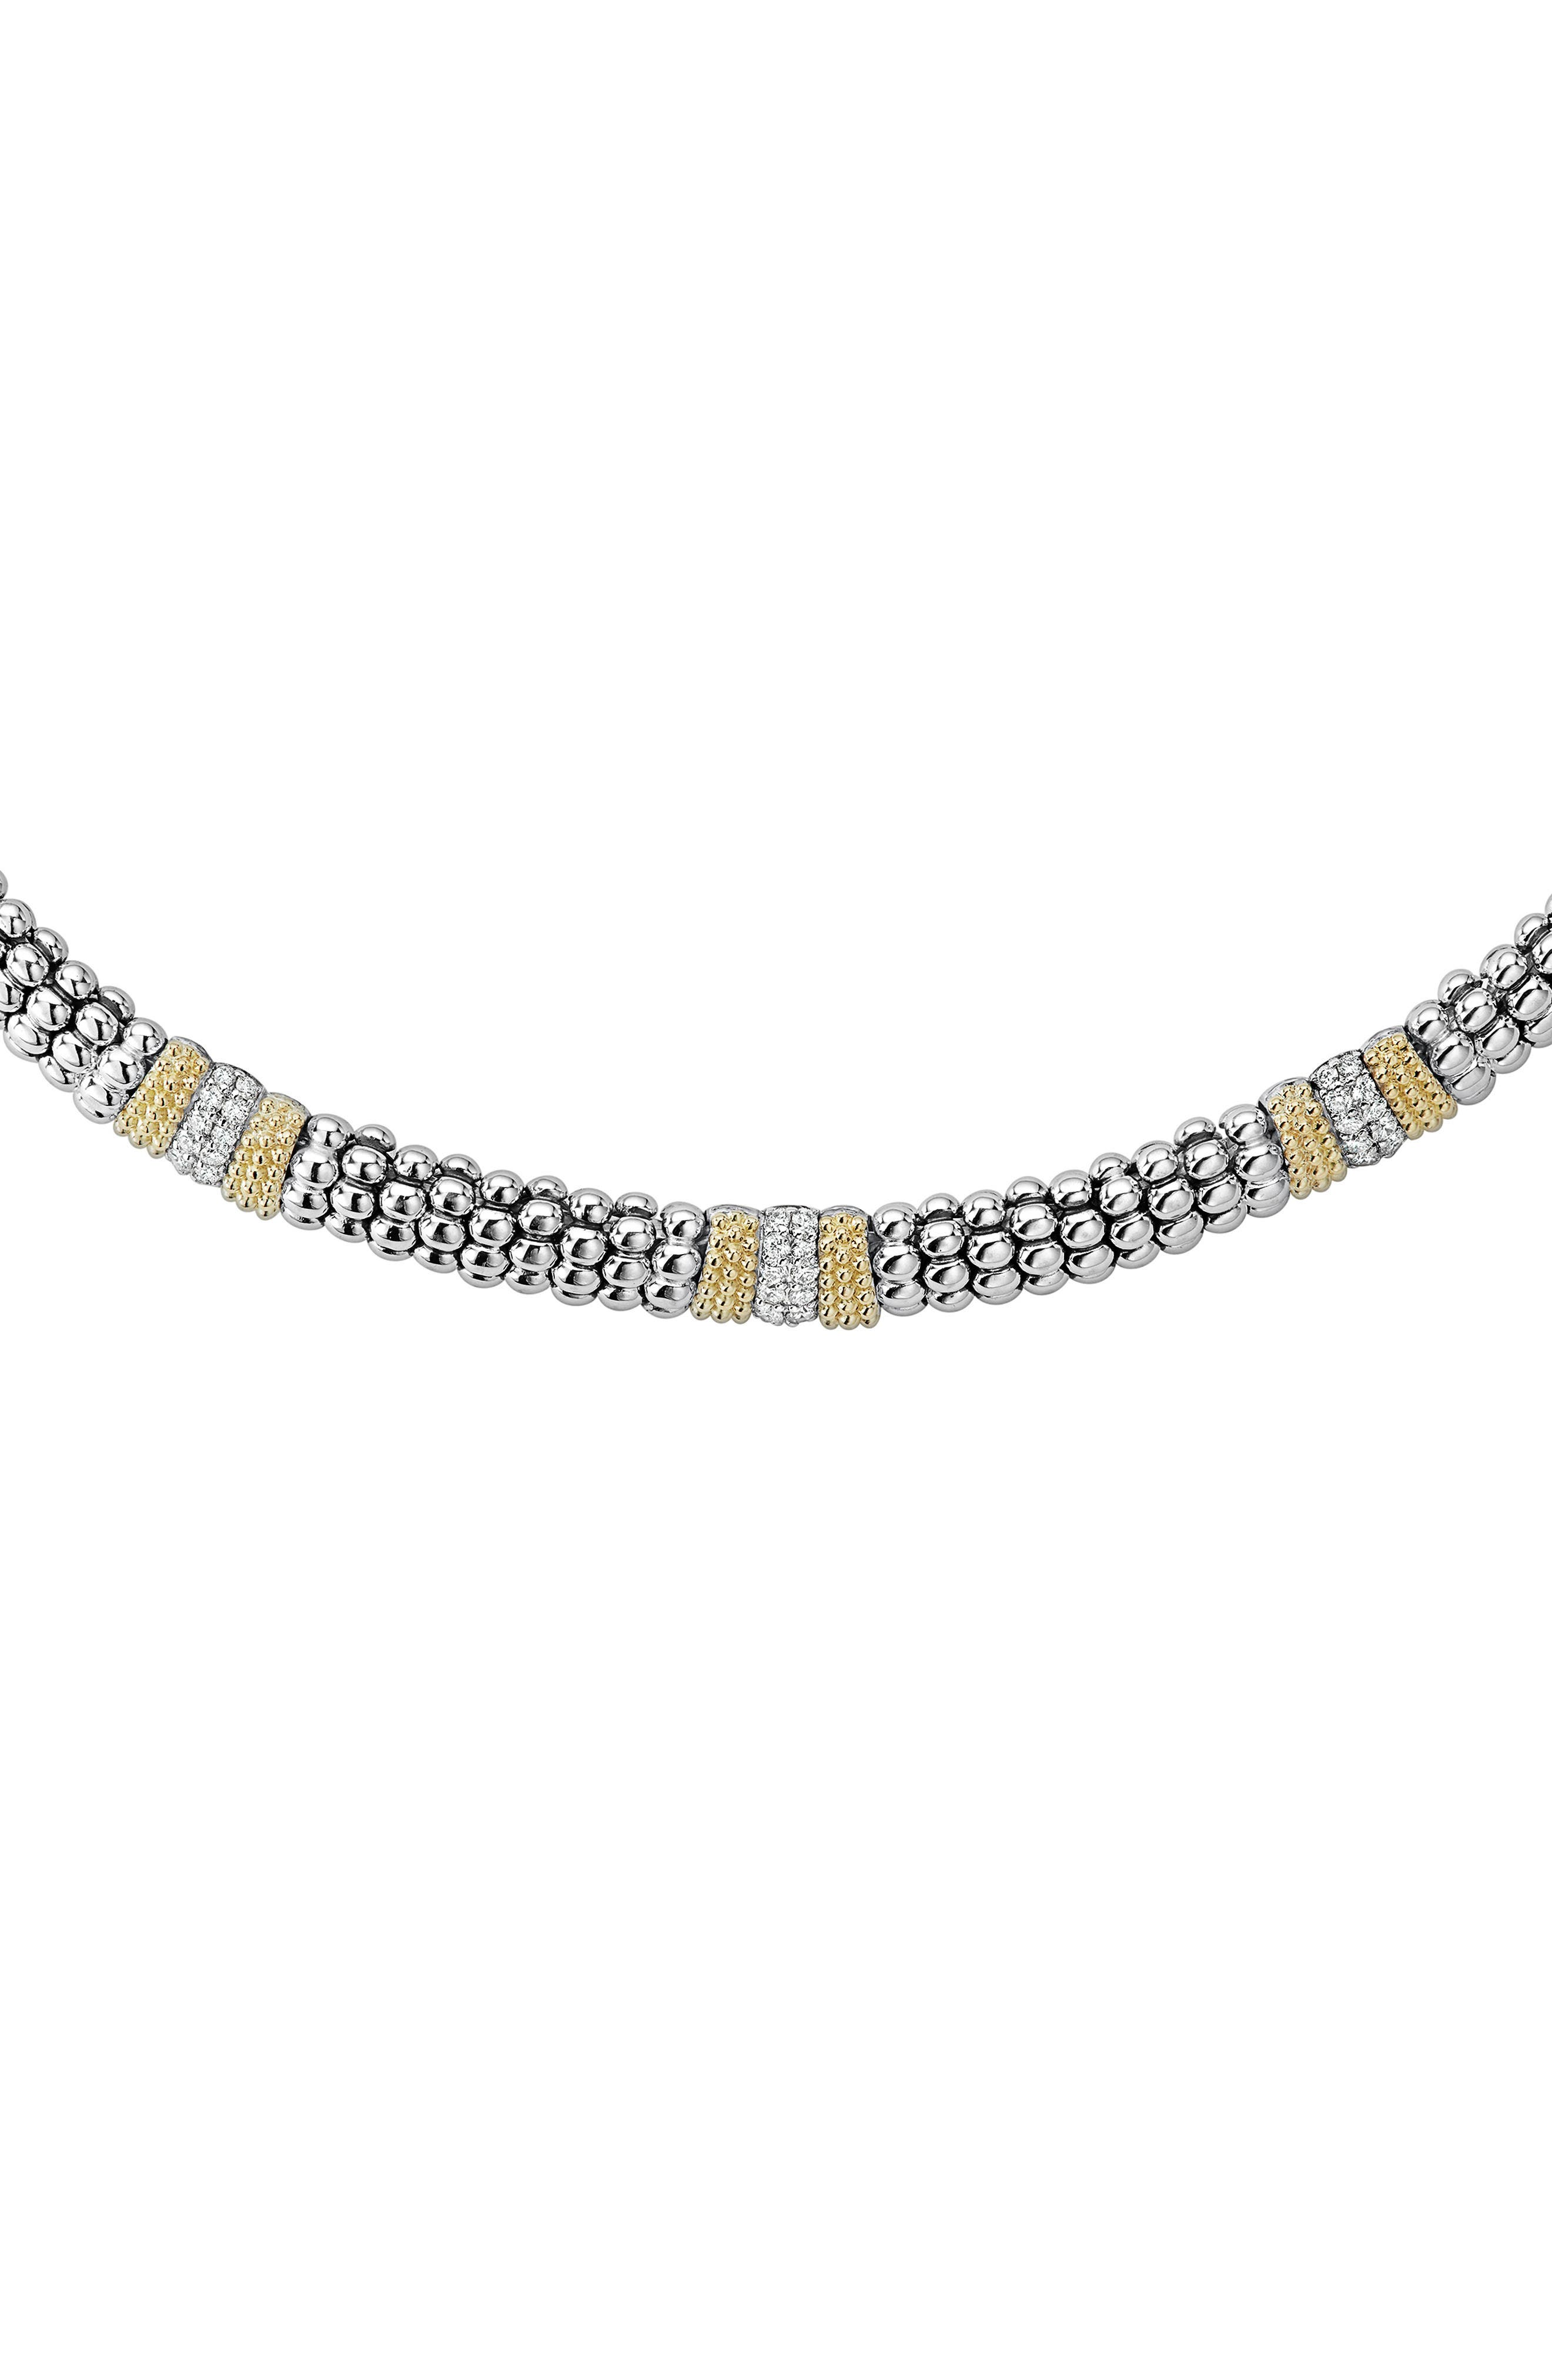 Diamond Lux Triple Station Collar Necklace,                             Main thumbnail 1, color,                             SILVER/ DIAMOND